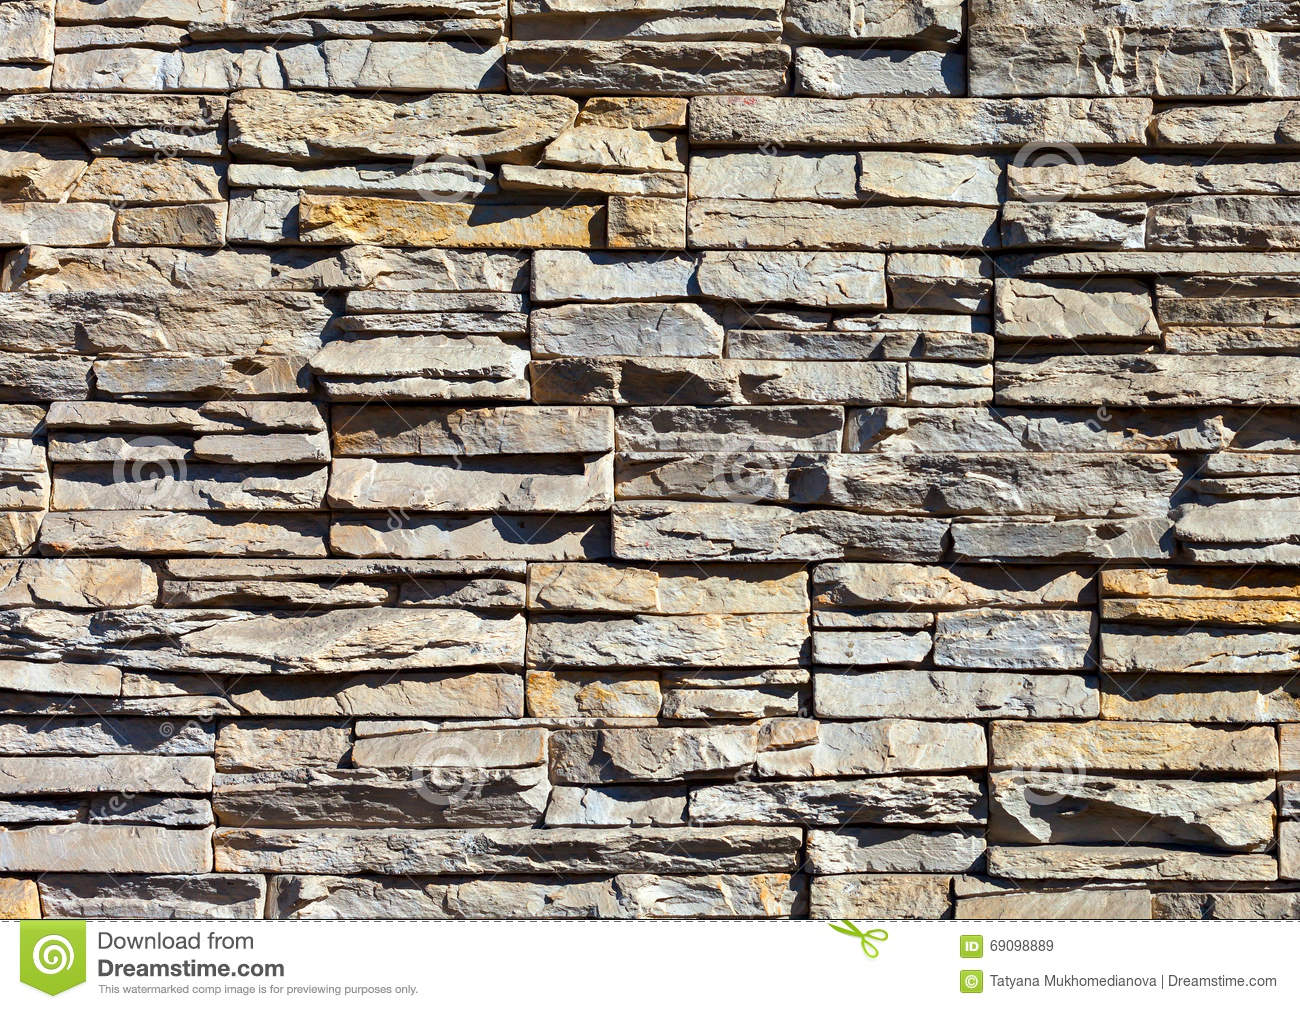 Modern Stone Wall Texture Pictures To Pin On Pinterest